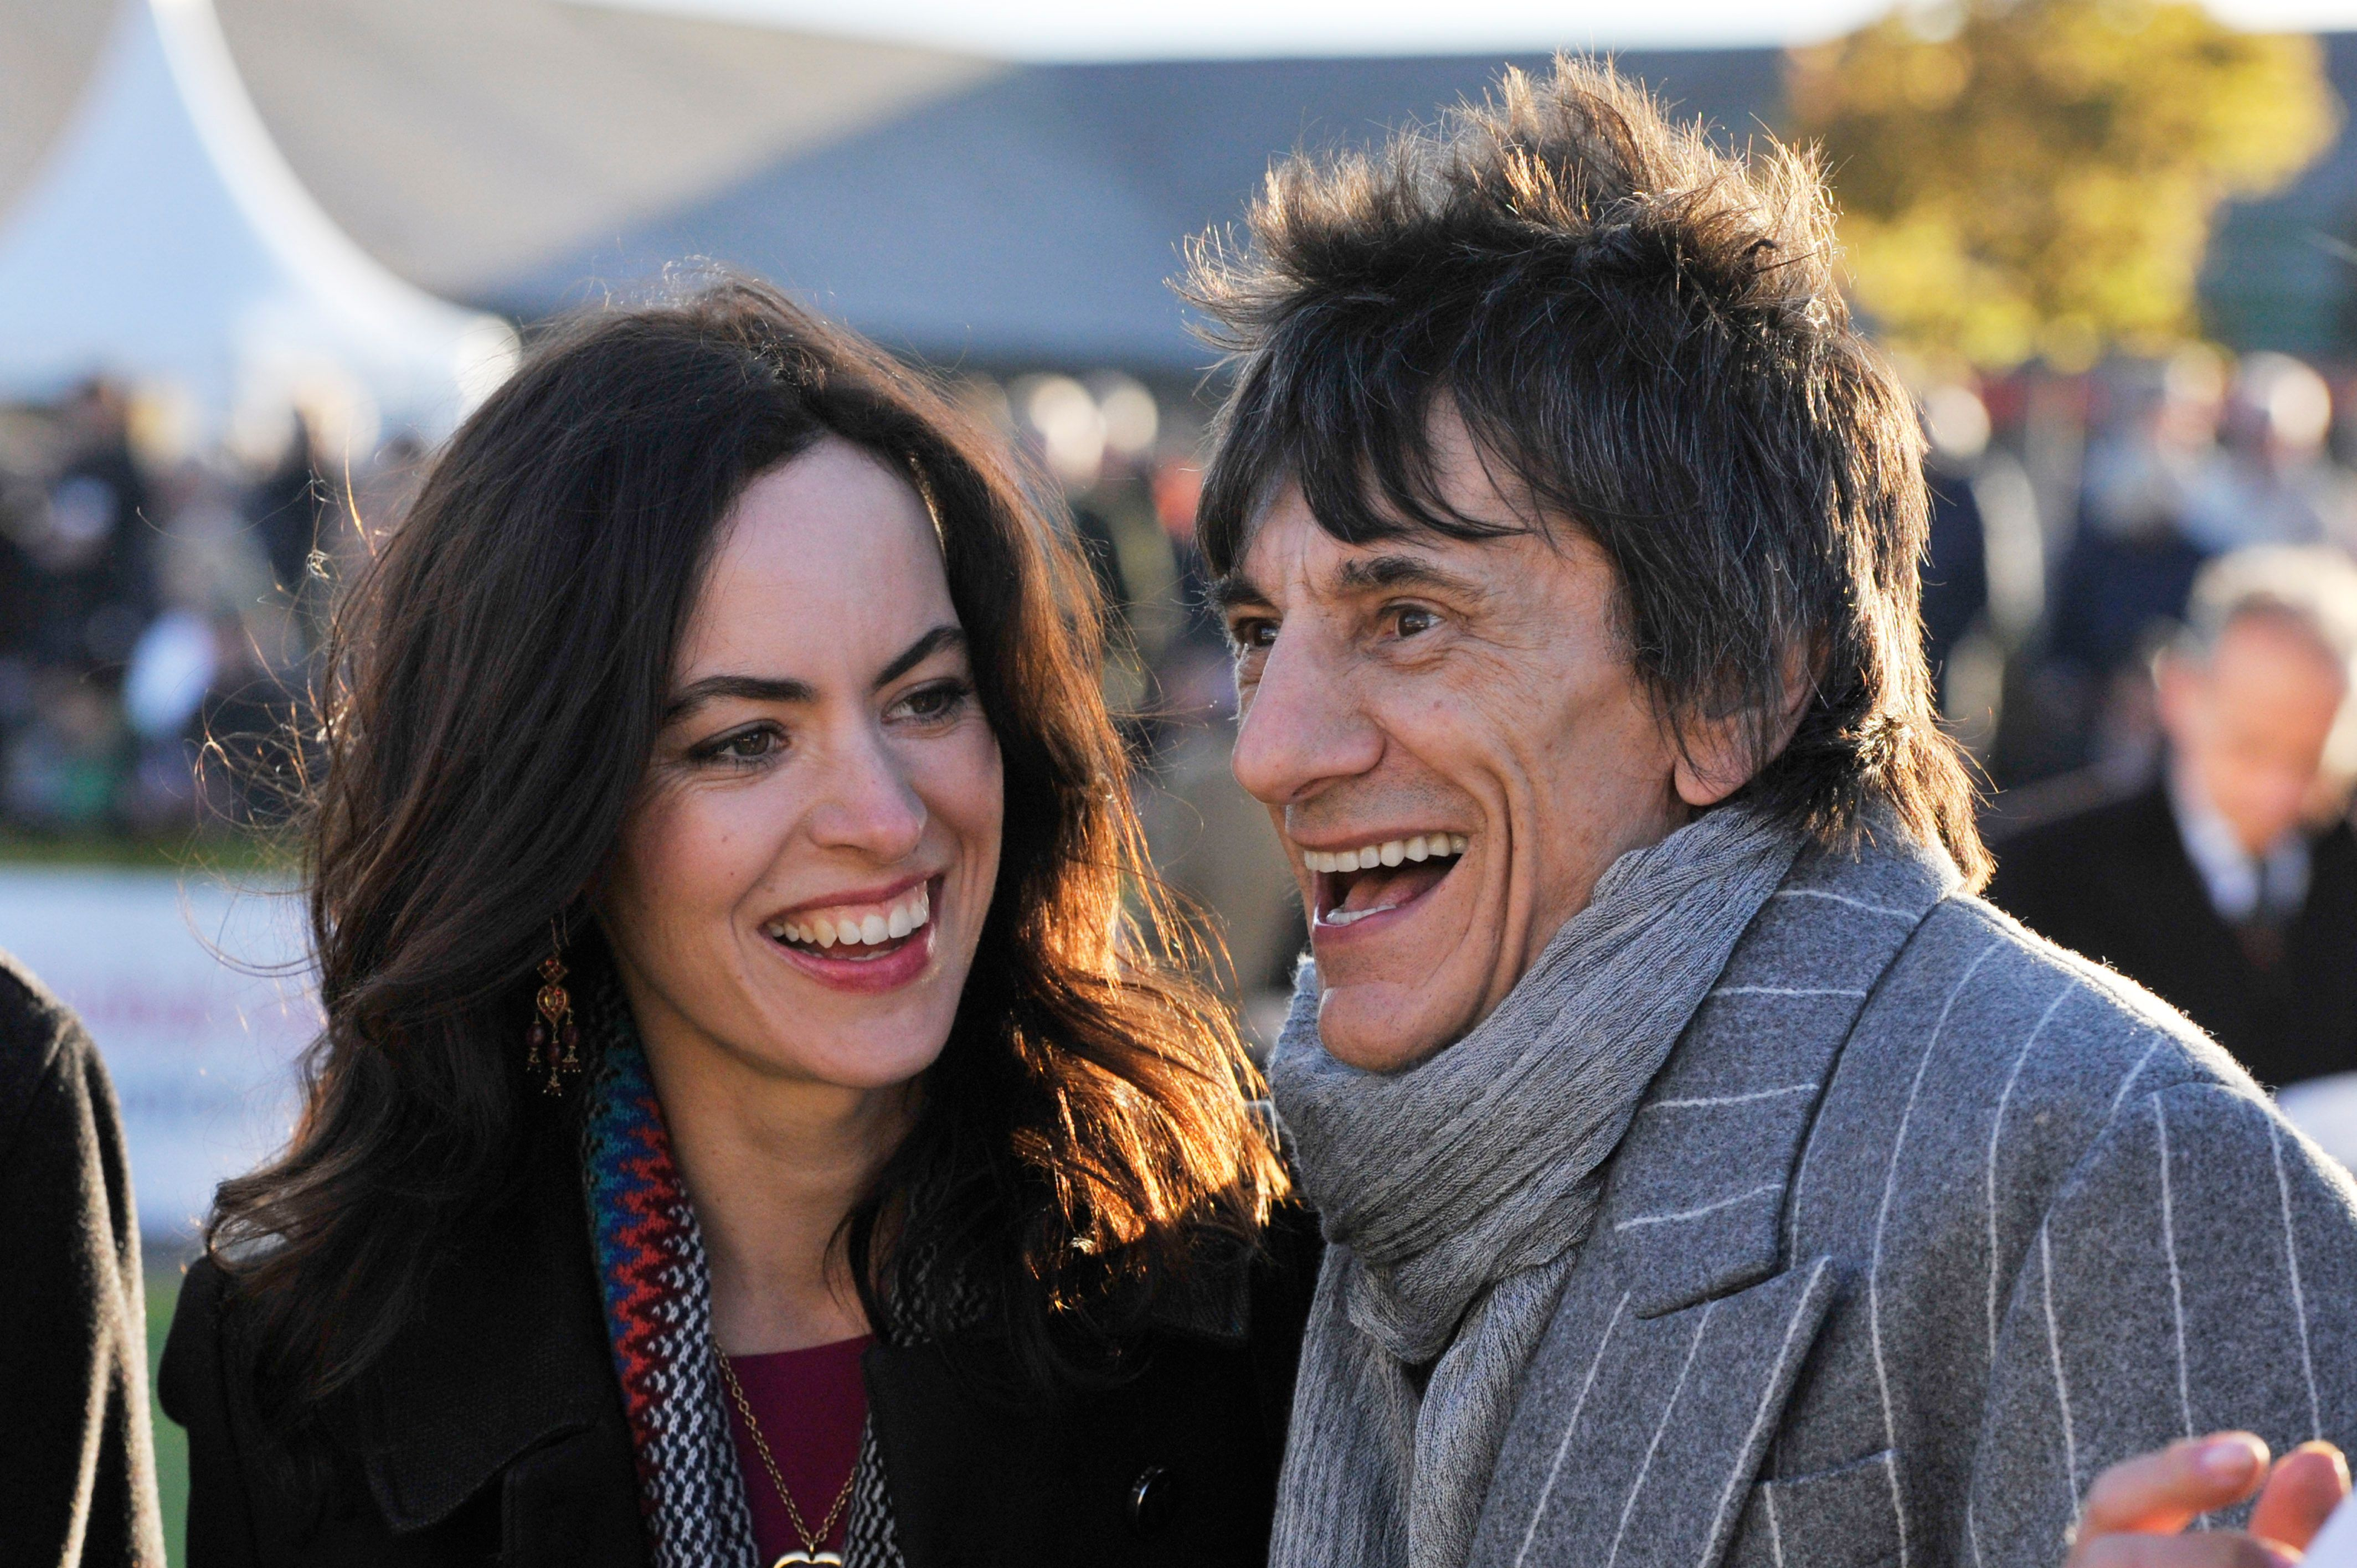 Sally and Ronnie Wood at Punchestown Racecourse in April, 2015 in Naas, Ireland | Source: Getty Images